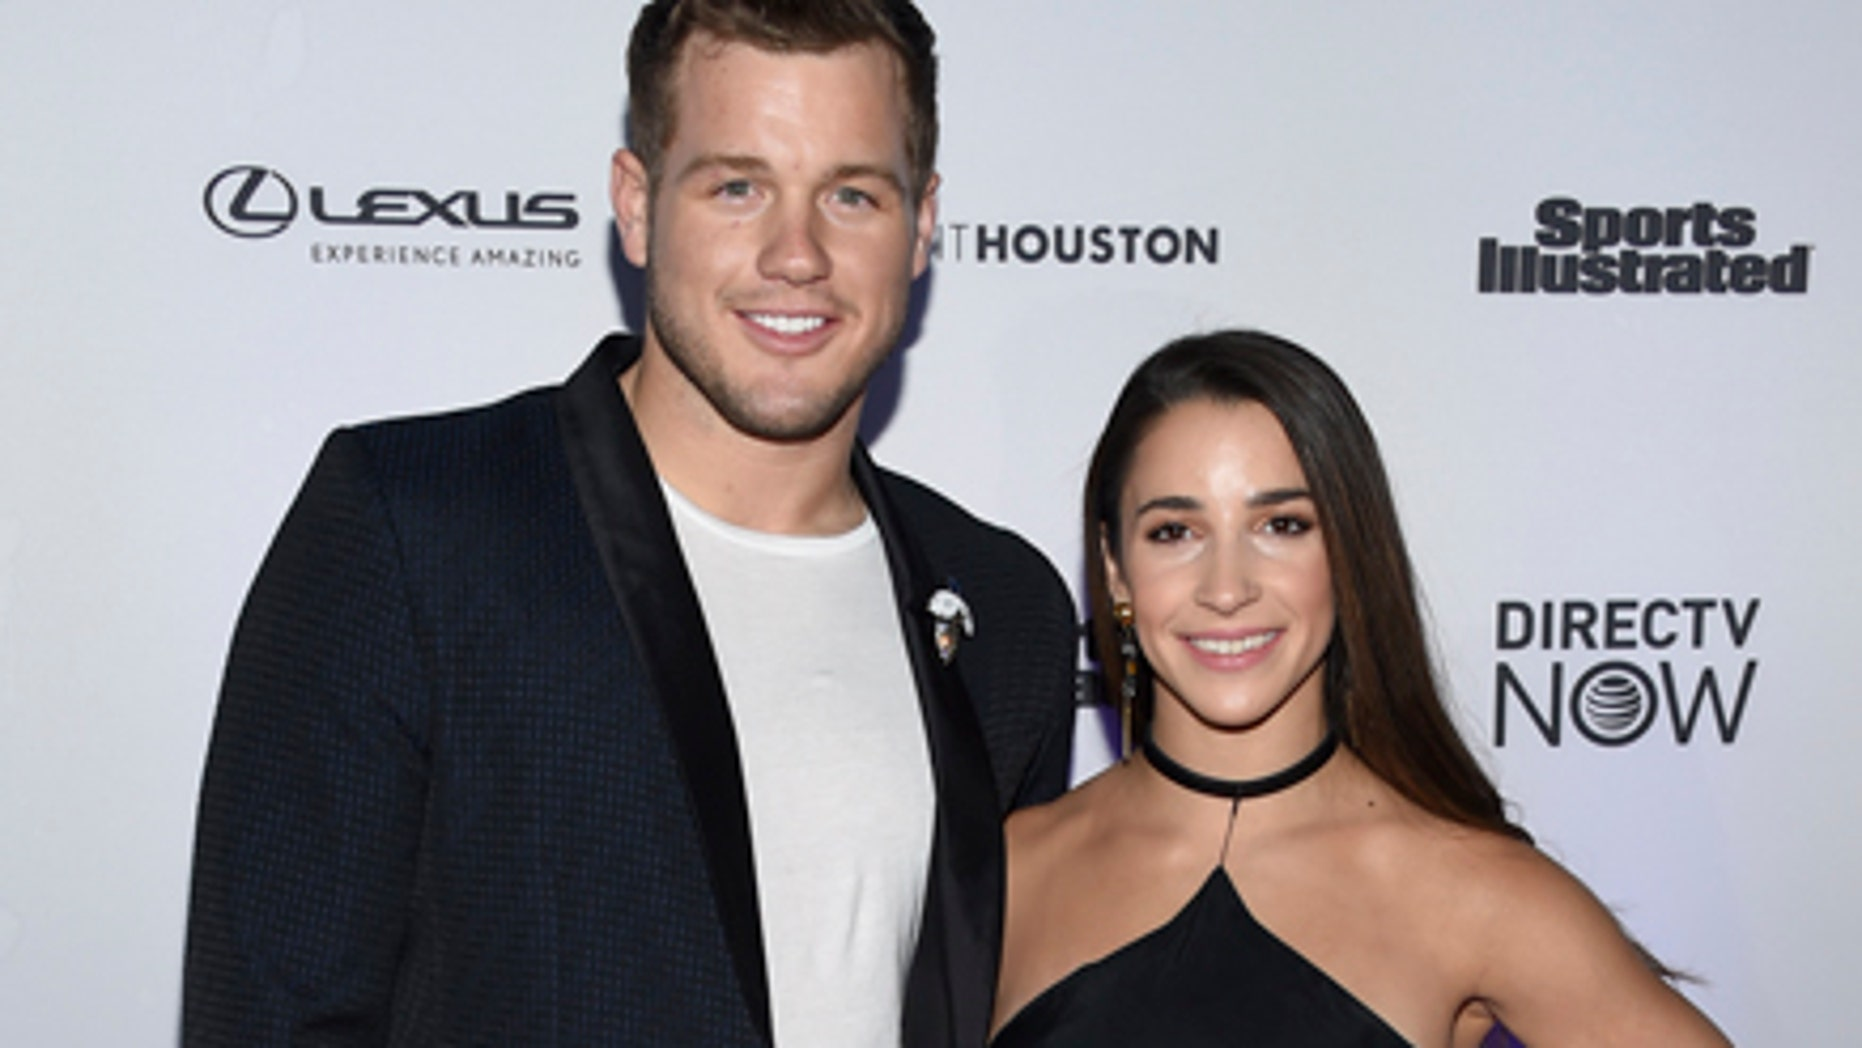 Colton Underwood with his ex-girlfriend, Olympic gold medalist Aly Raisman.